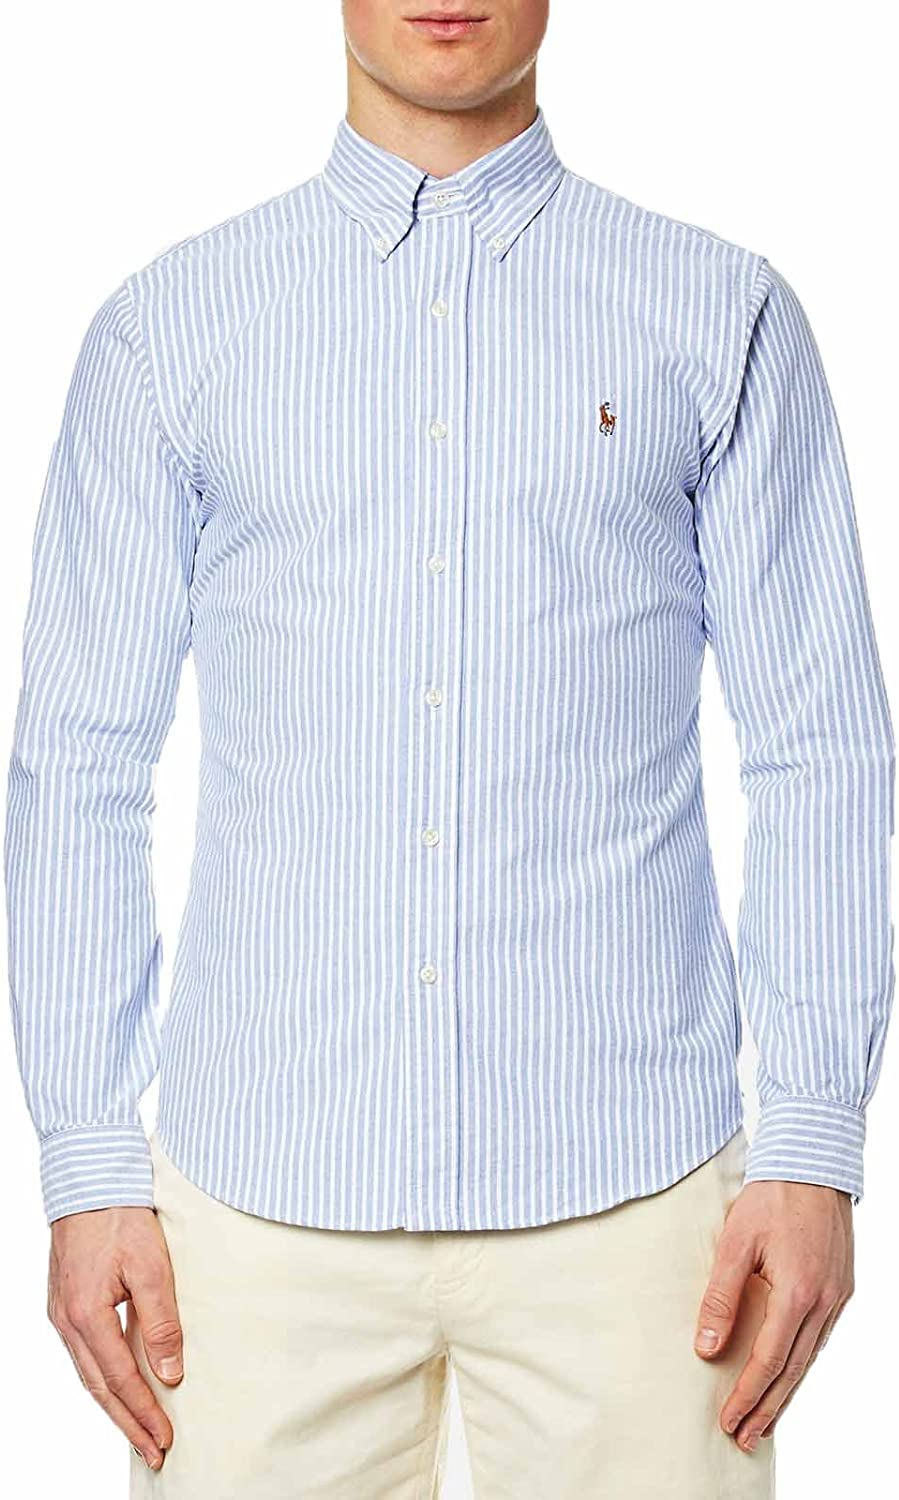 Mens Button Down Pinpoint Oxford Shirt Large, Blue//White